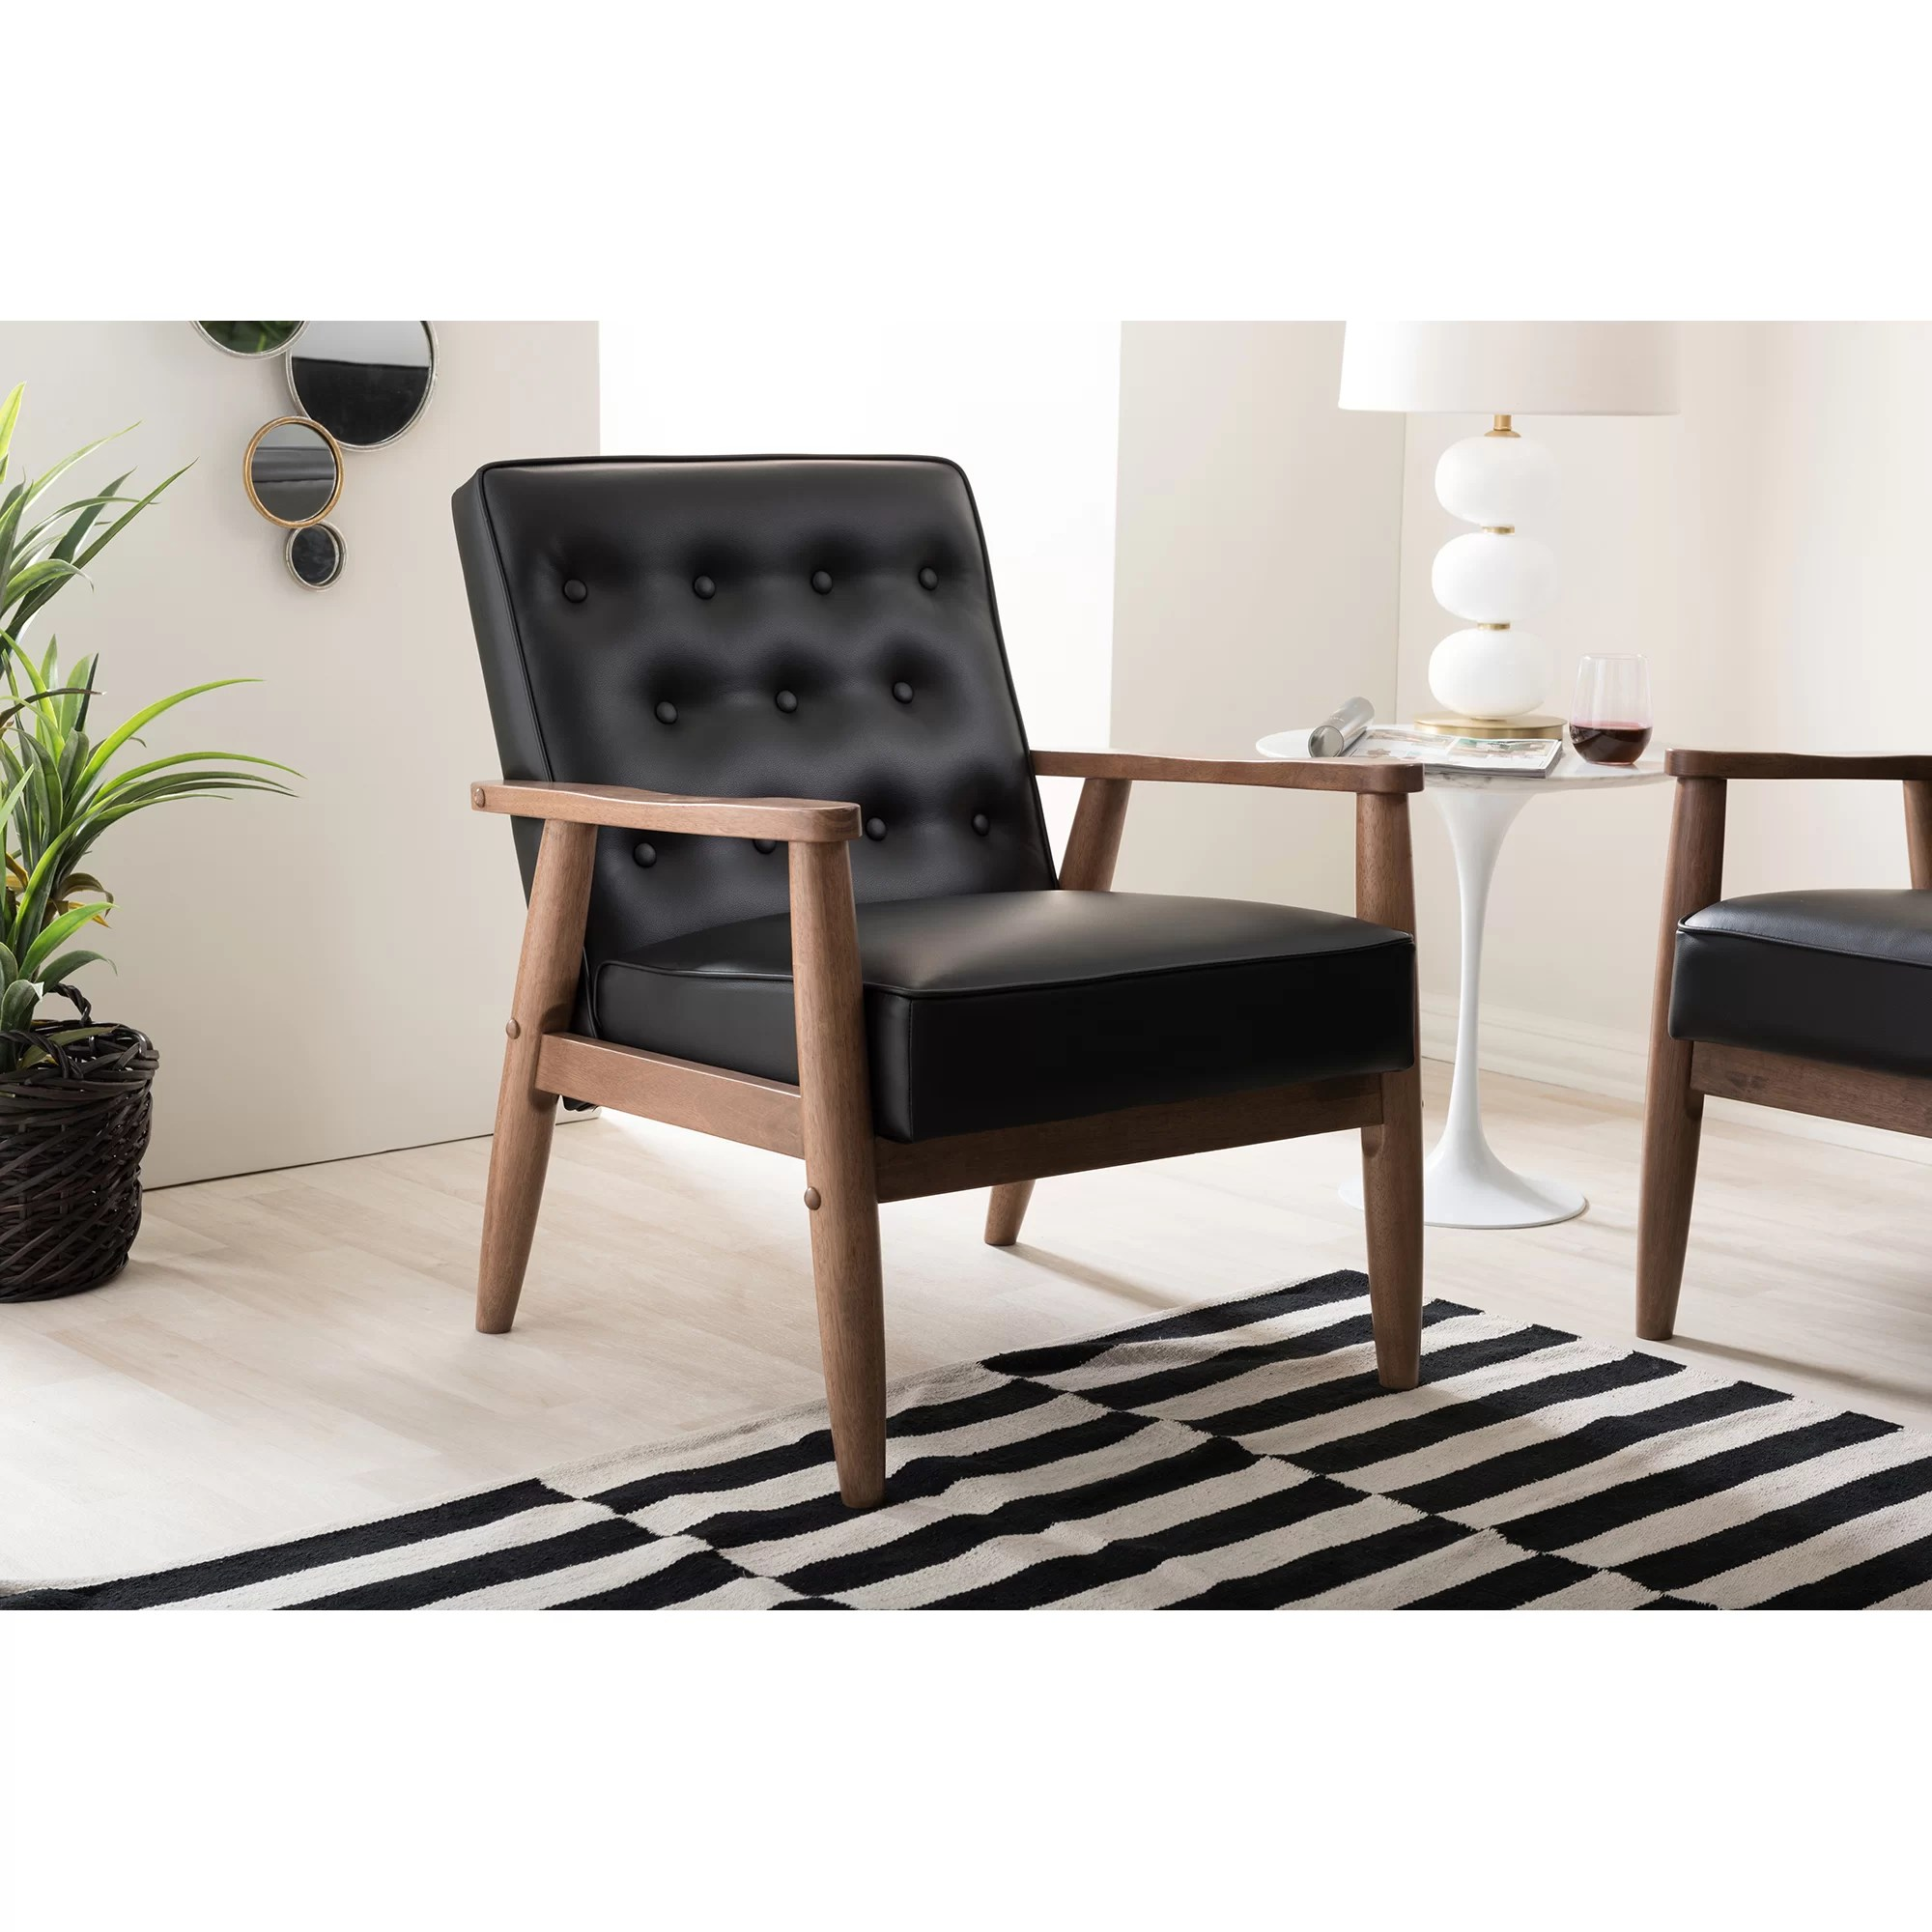 Wooden Lounge Chair Baxton Studio Lounge Chair Wayfair